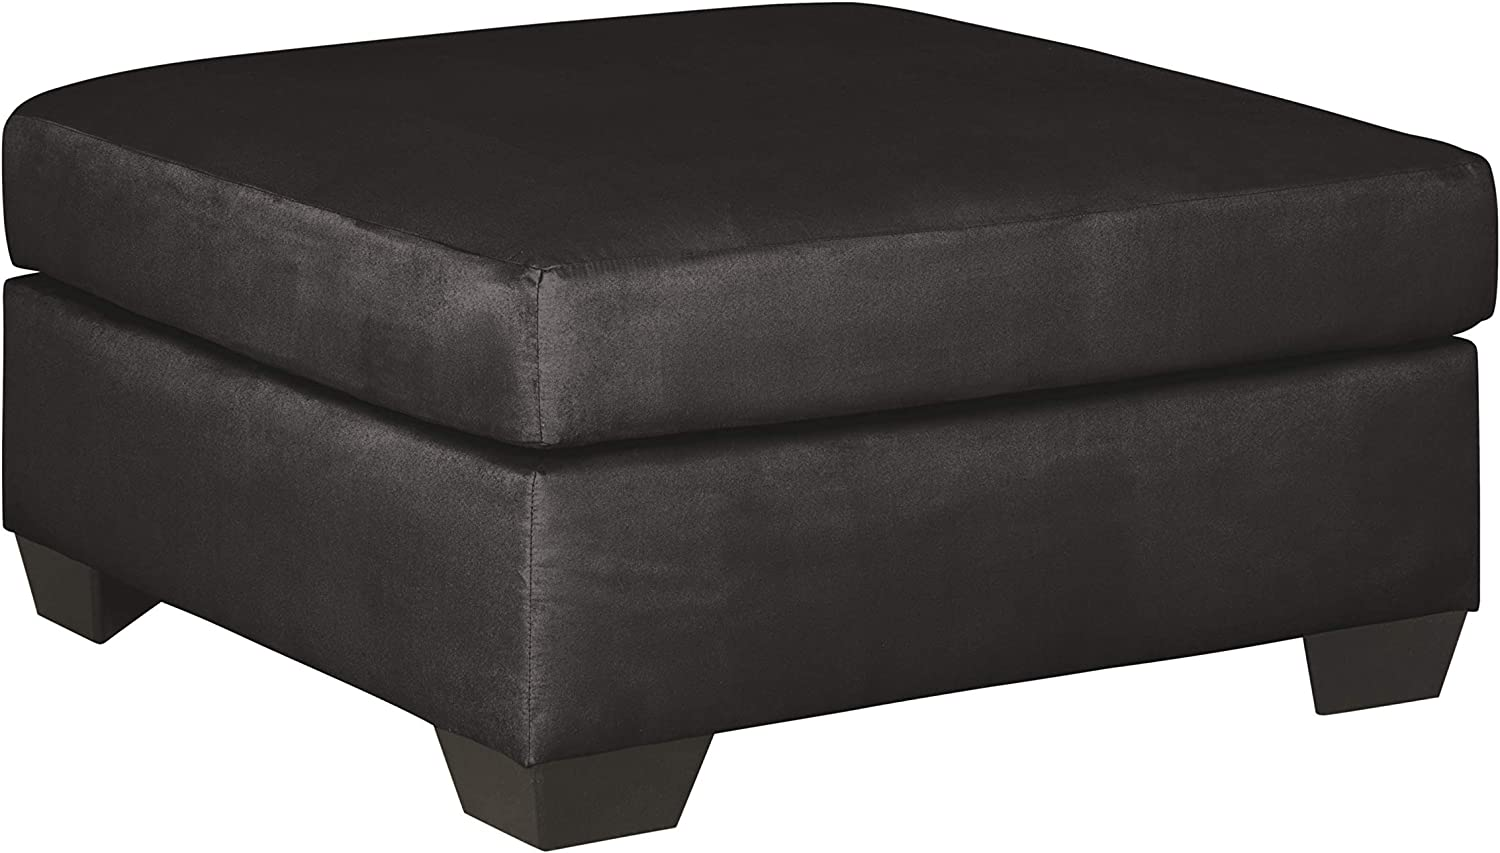 Signature Design by Ashley - Darcy Contemporary Oversized Accent Ottoman, Black